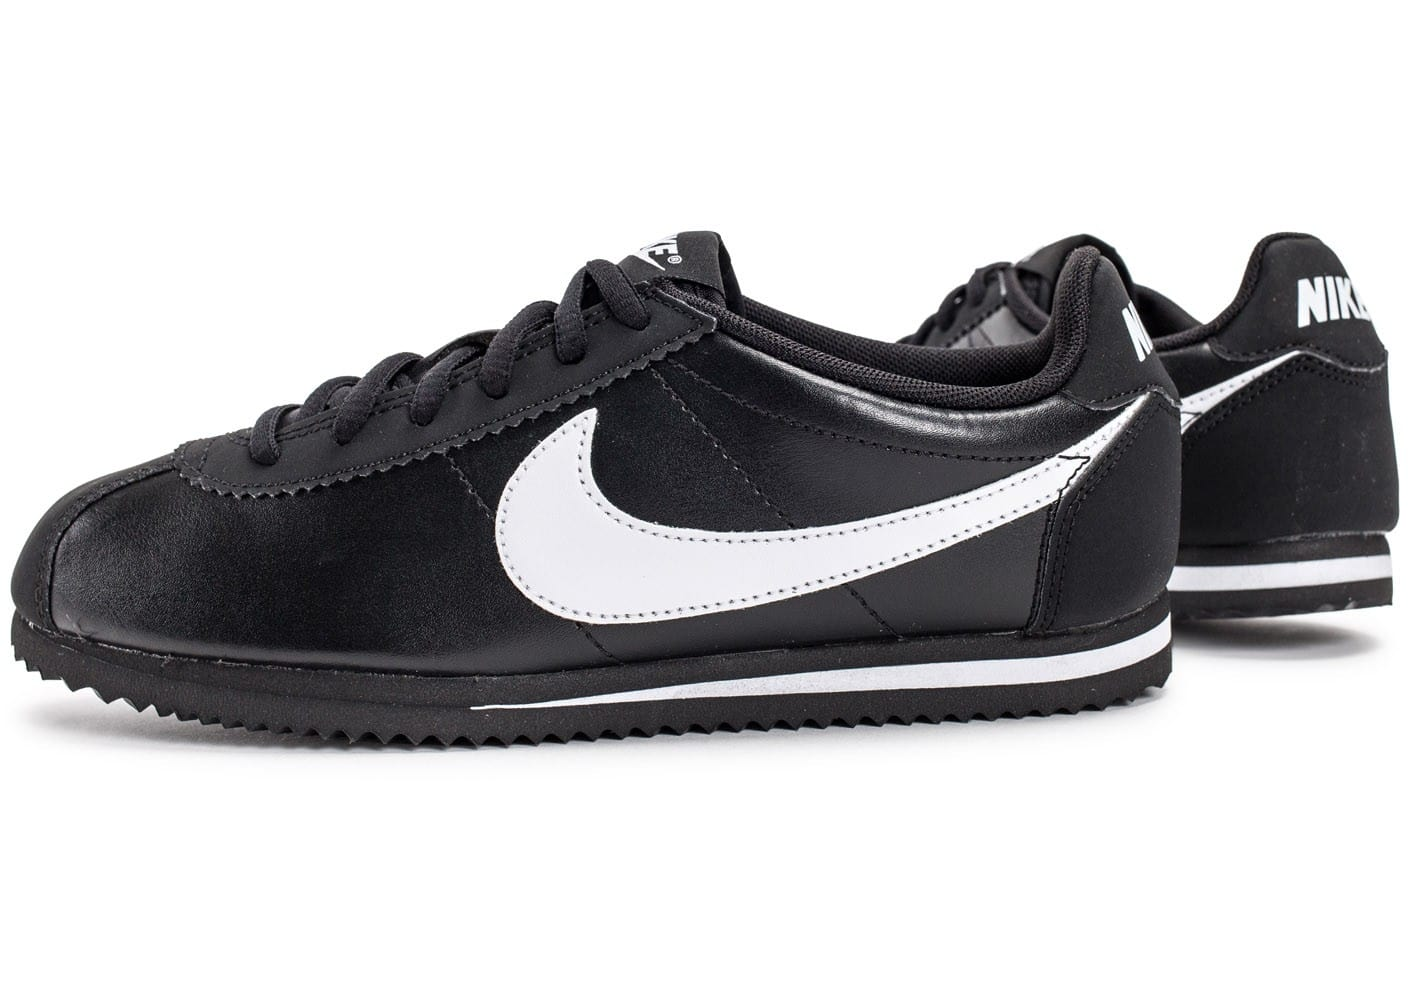 nike cortez leather junior noire et blanche chaussures femme chausport. Black Bedroom Furniture Sets. Home Design Ideas